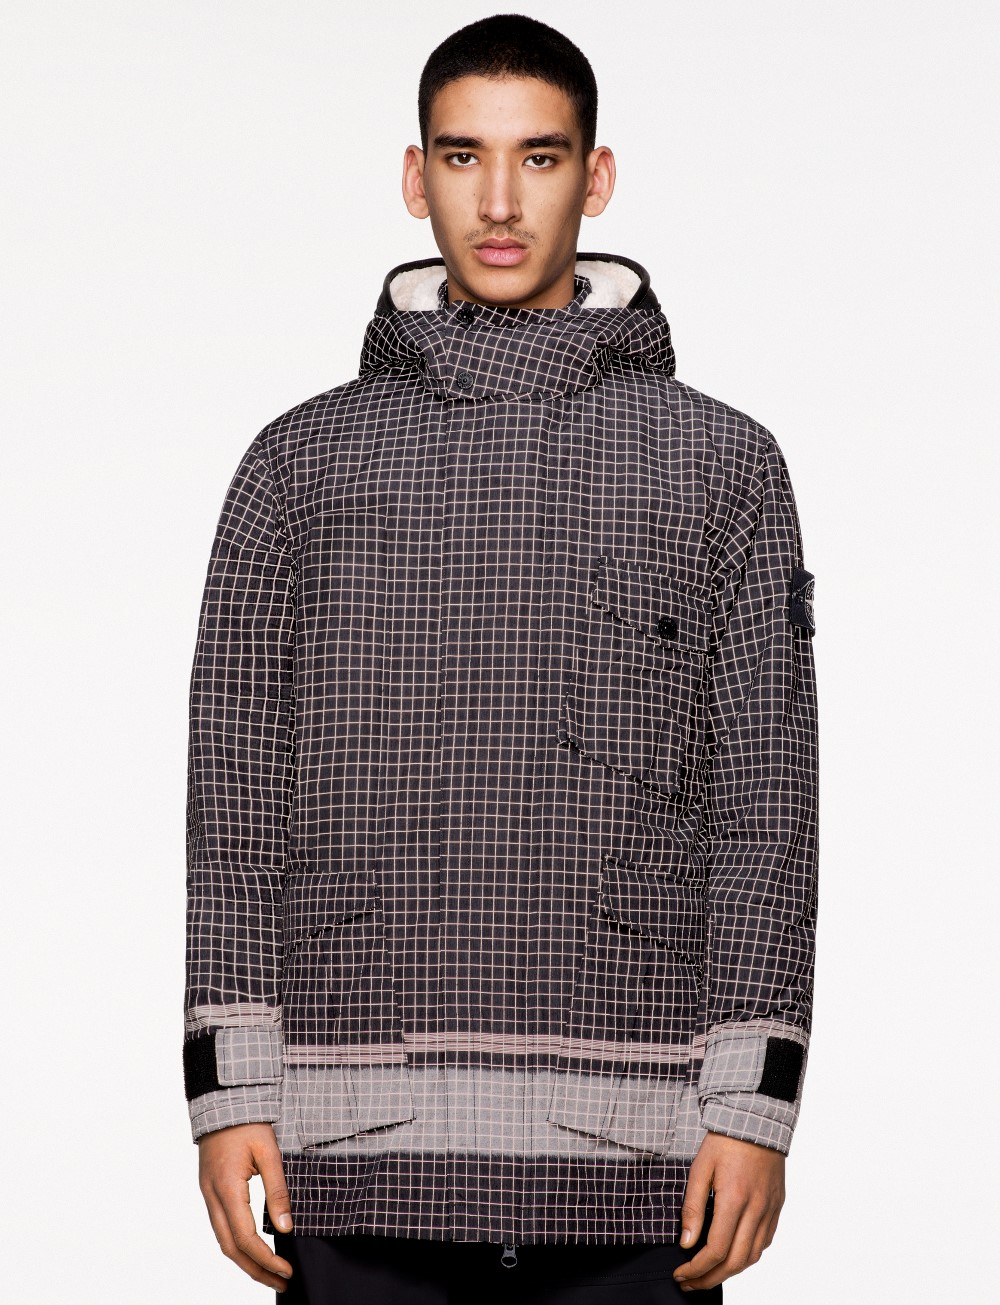 Stone Island - Collection Icon Imagery AH20